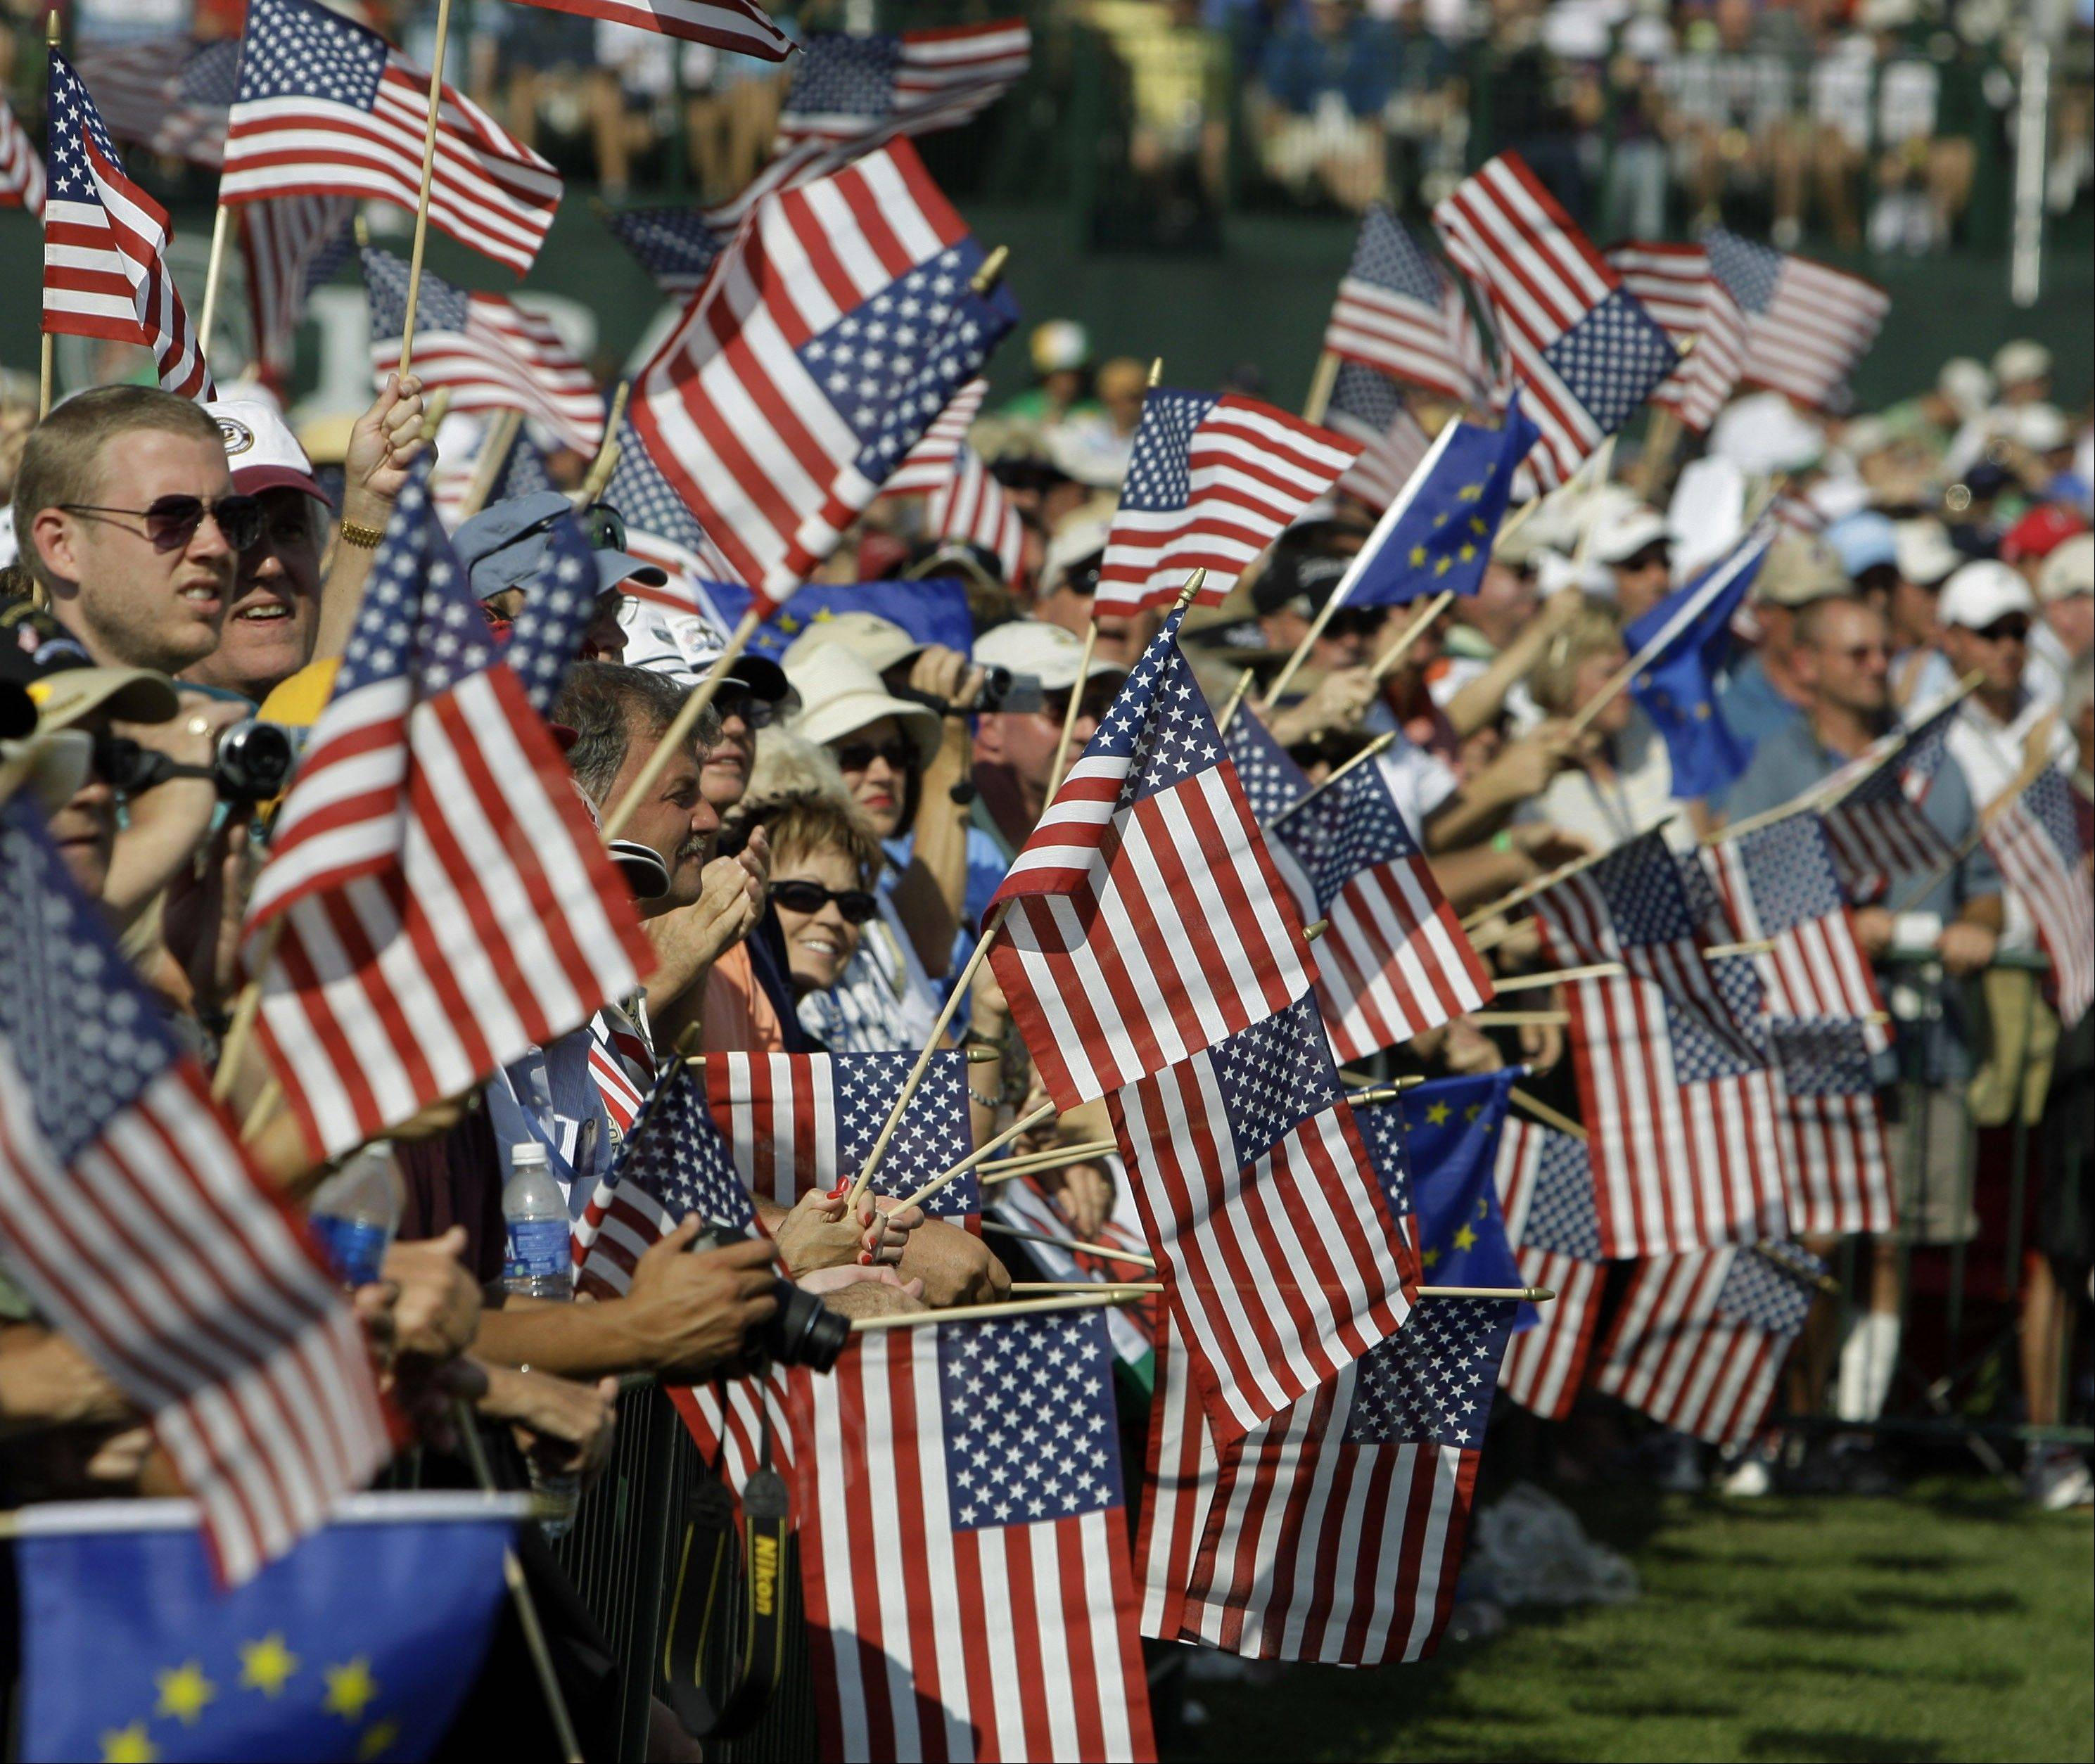 There will be lots of flag waving this week at Medinah Country Club, just as there was in 2008 when fans welcomes Team USA at the Ryder Cup opening ceremonies (above) at Valhalla Golf Club in Louisville, Ky. In golf, it's the biggest event of the year.